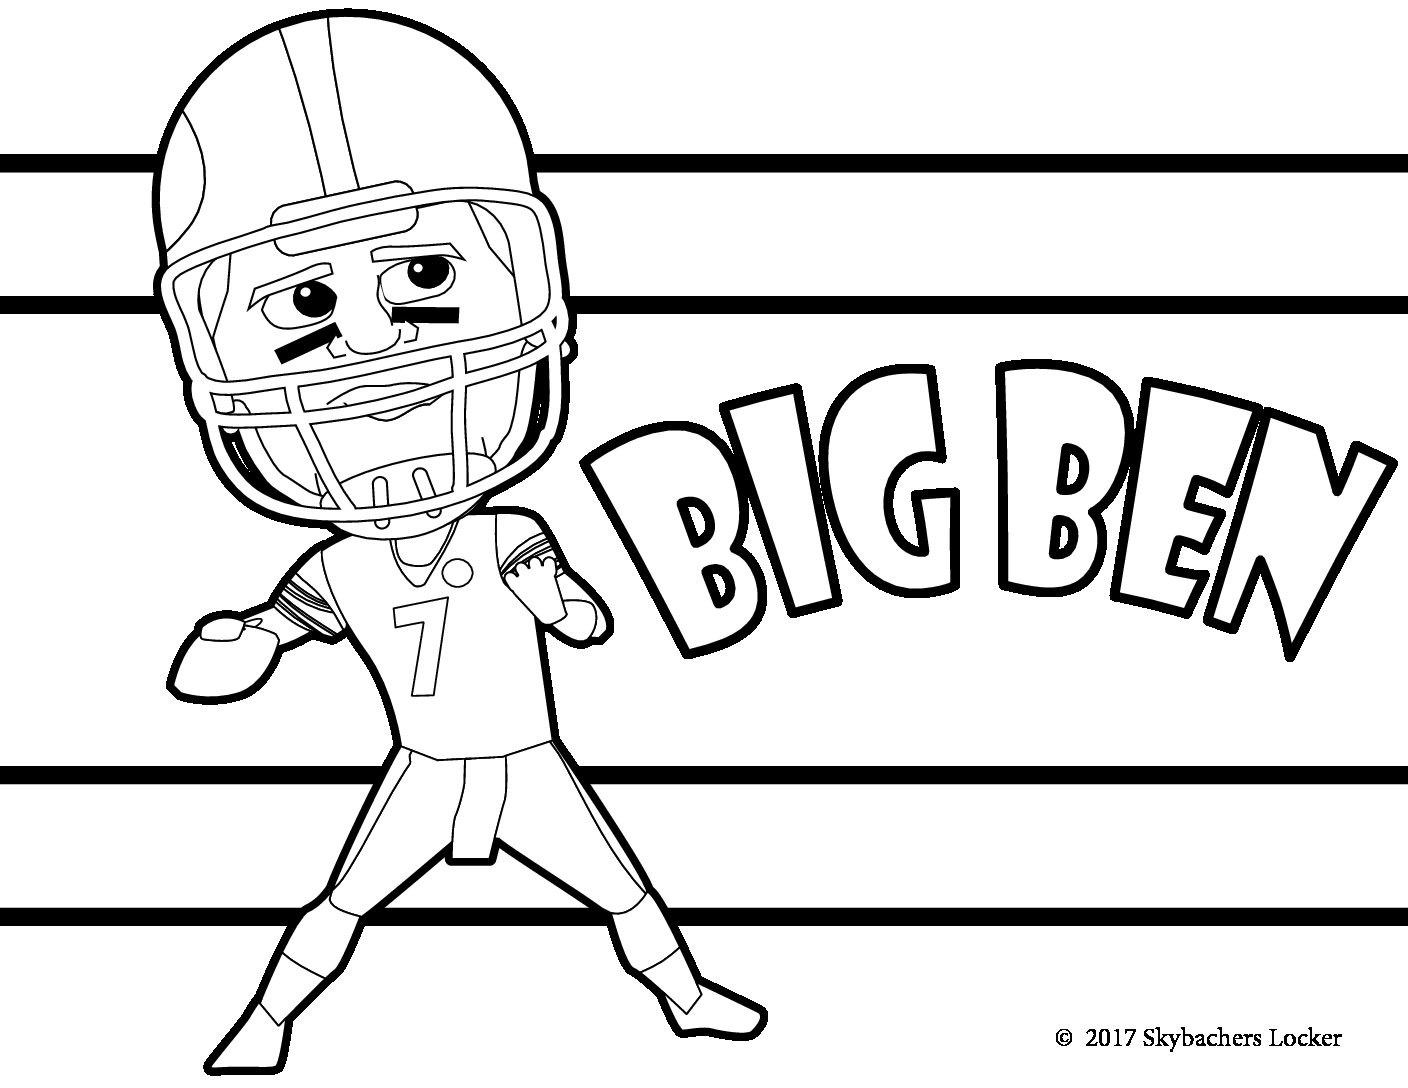 Free Steelers Coloring Pages for 2017 Skybacher 39 s Locker